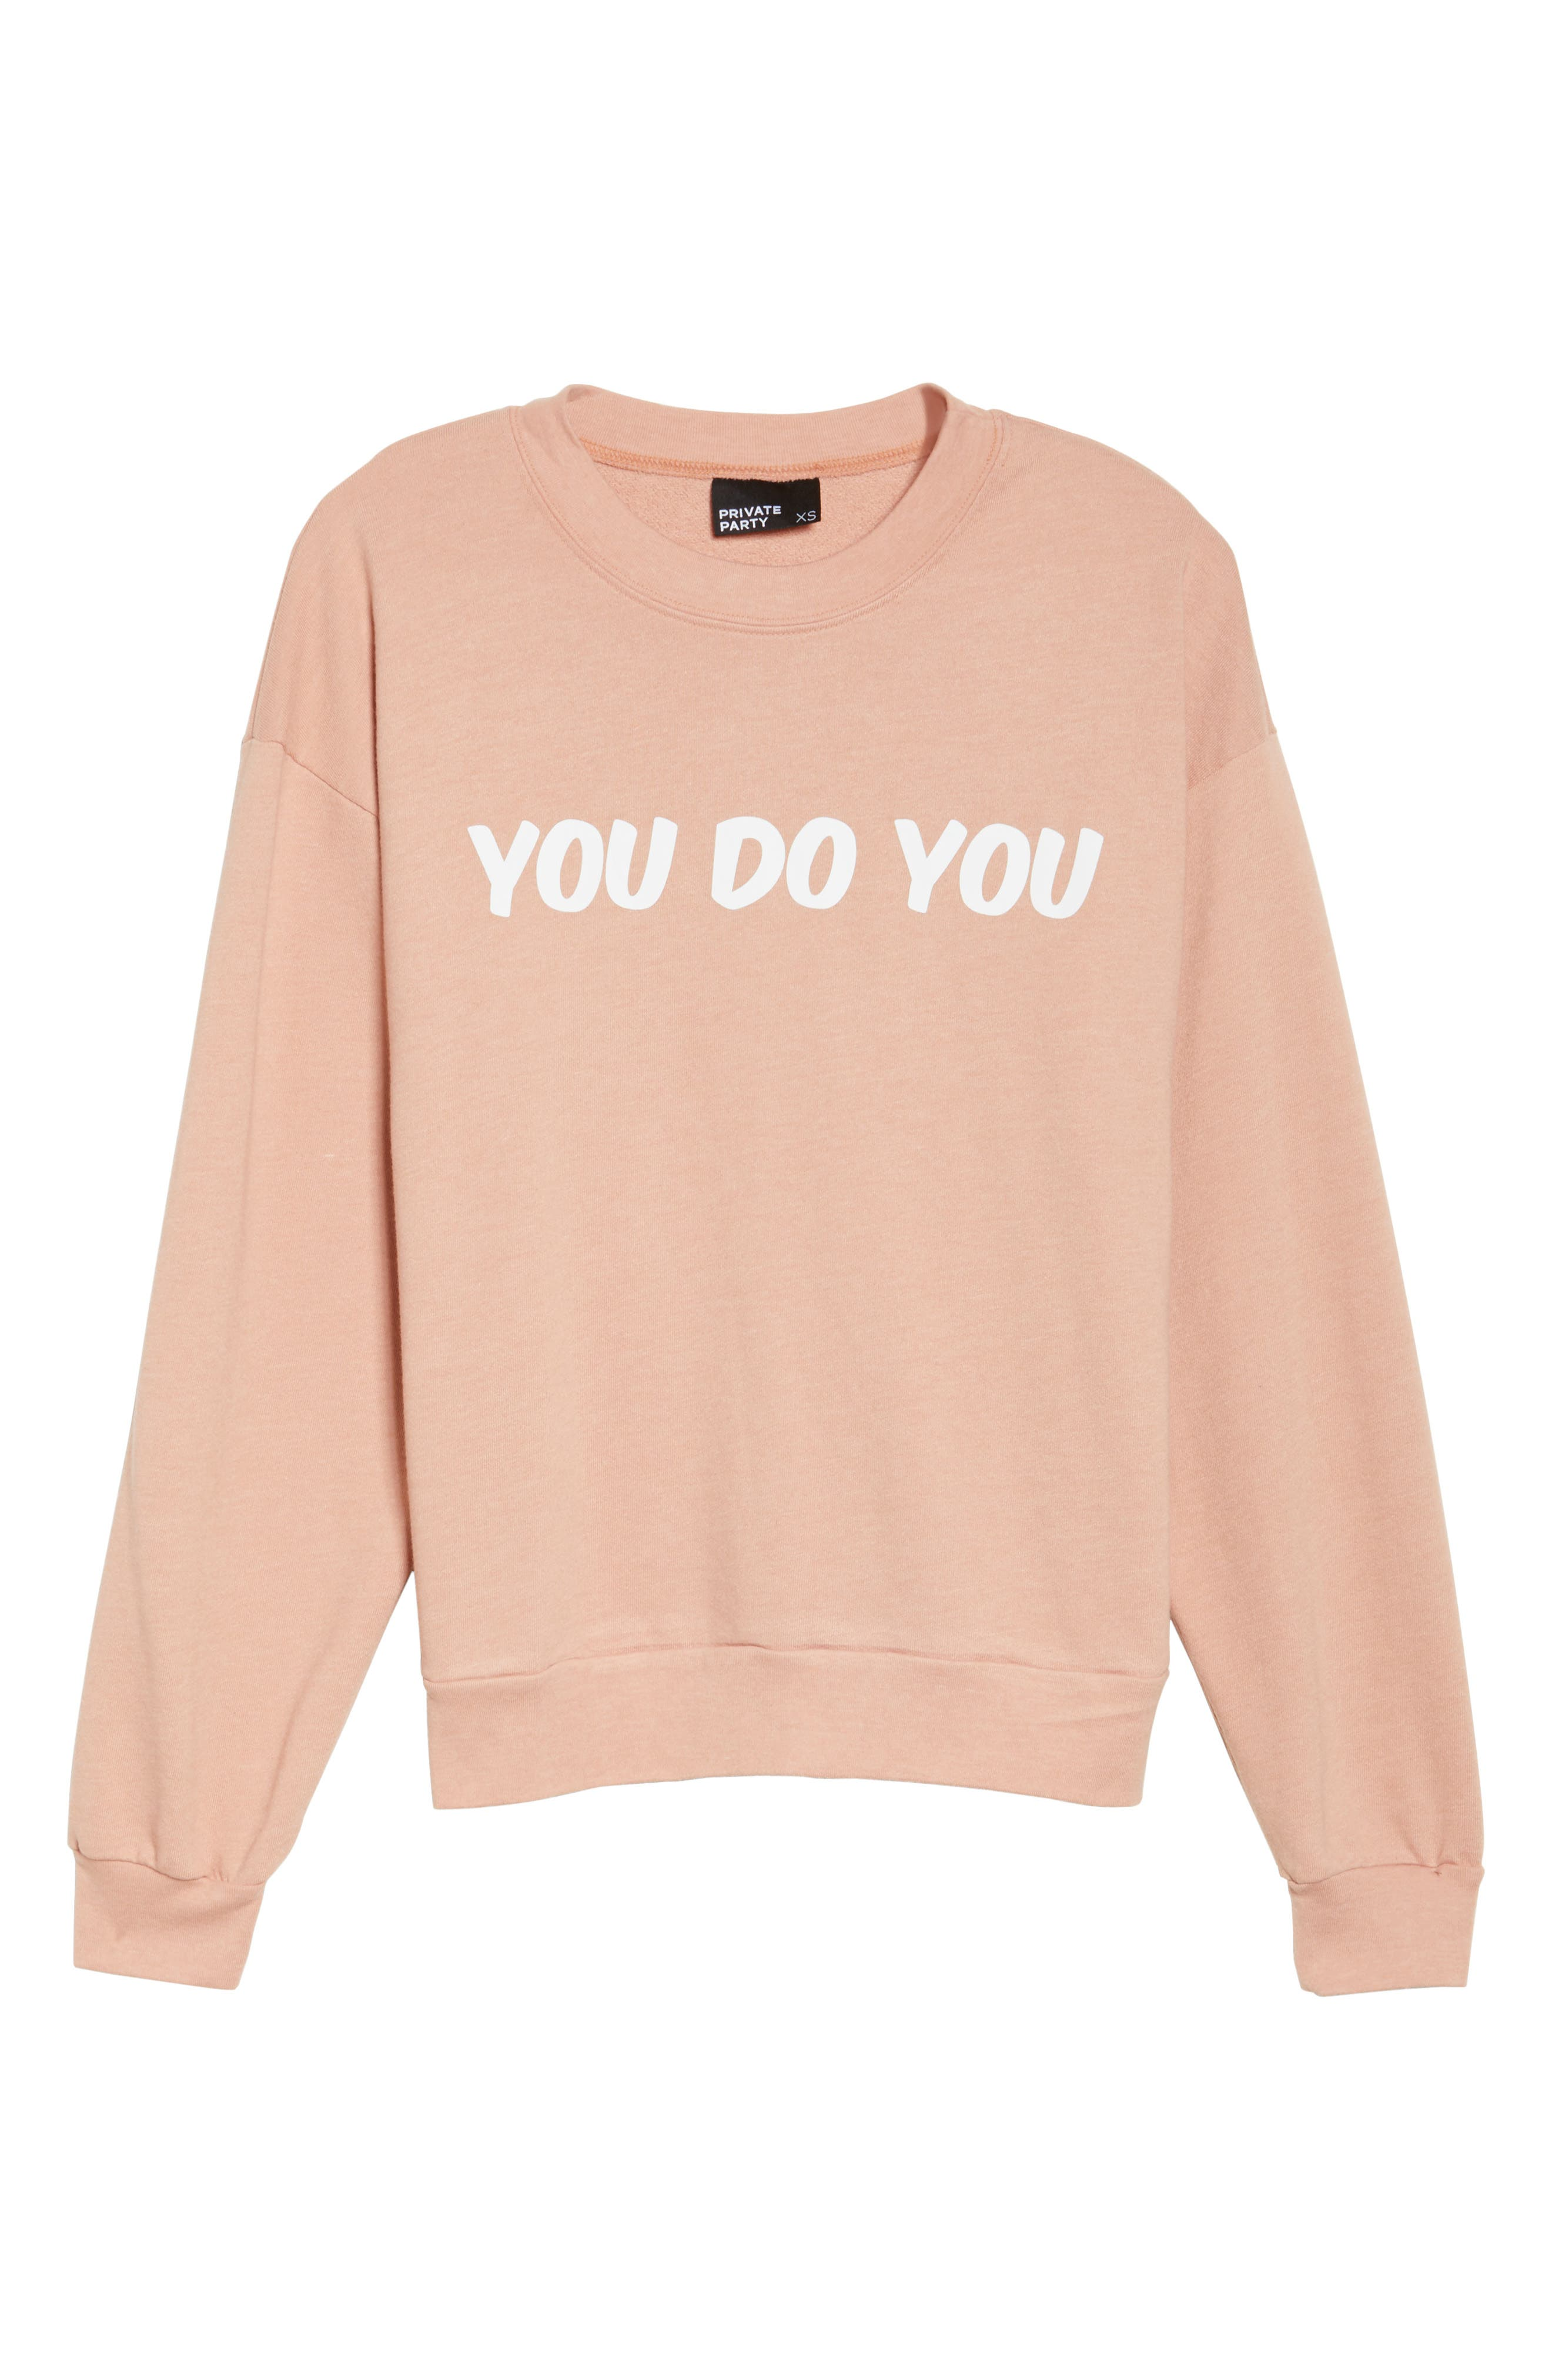 You Do You Sweatshirt,                             Alternate thumbnail 7, color,                             Rose